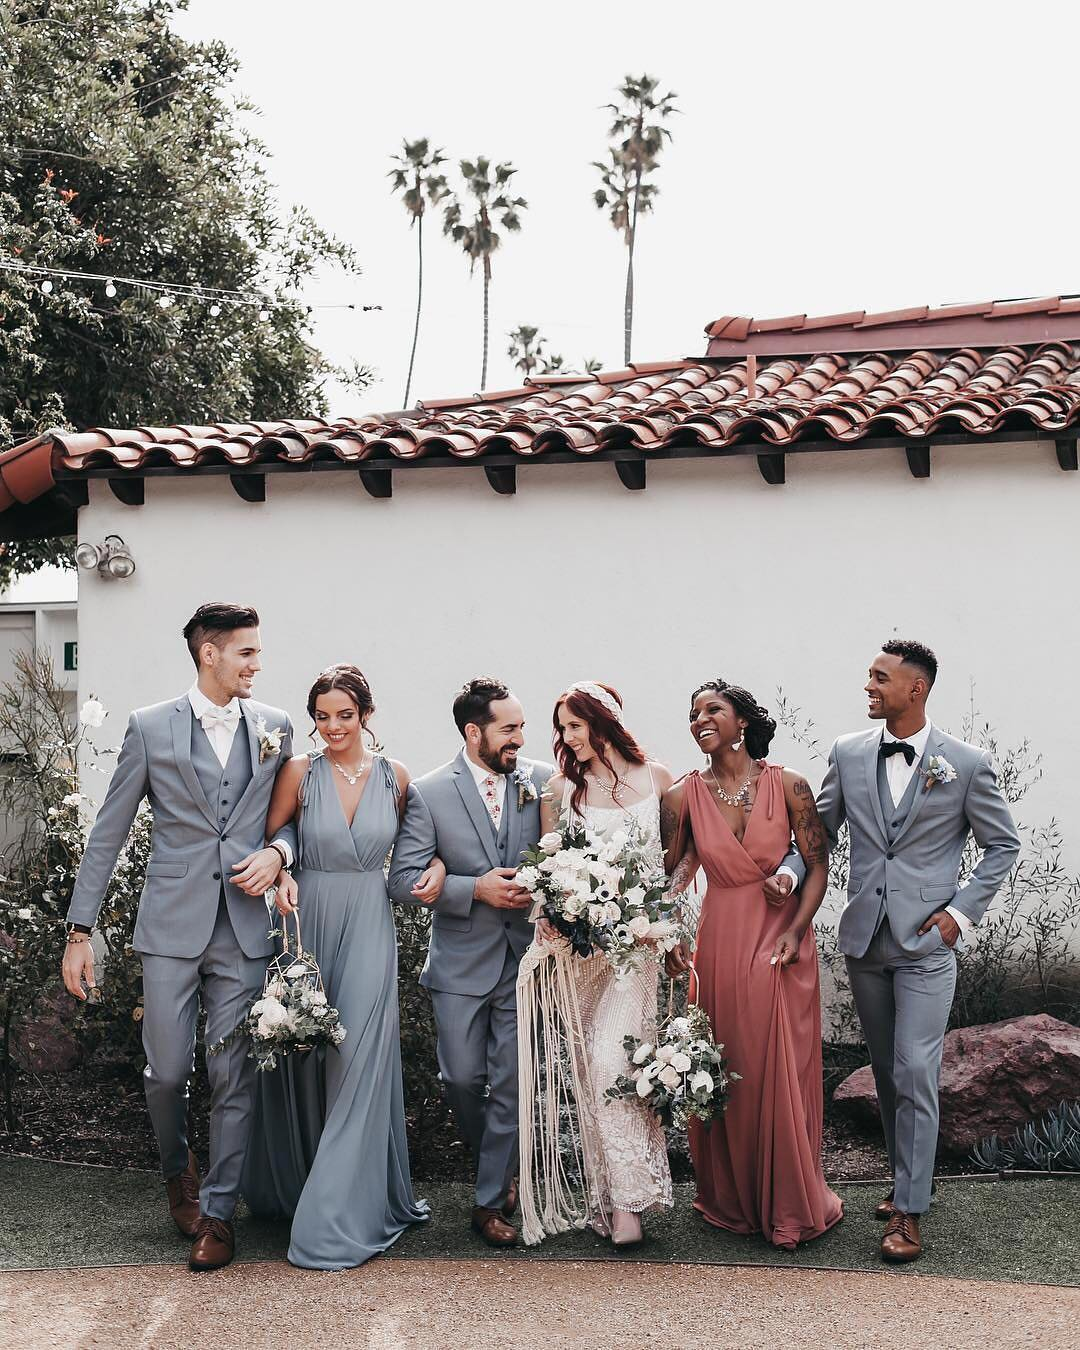 7 Vintage Wedding Theme Colors That Will Look Totally